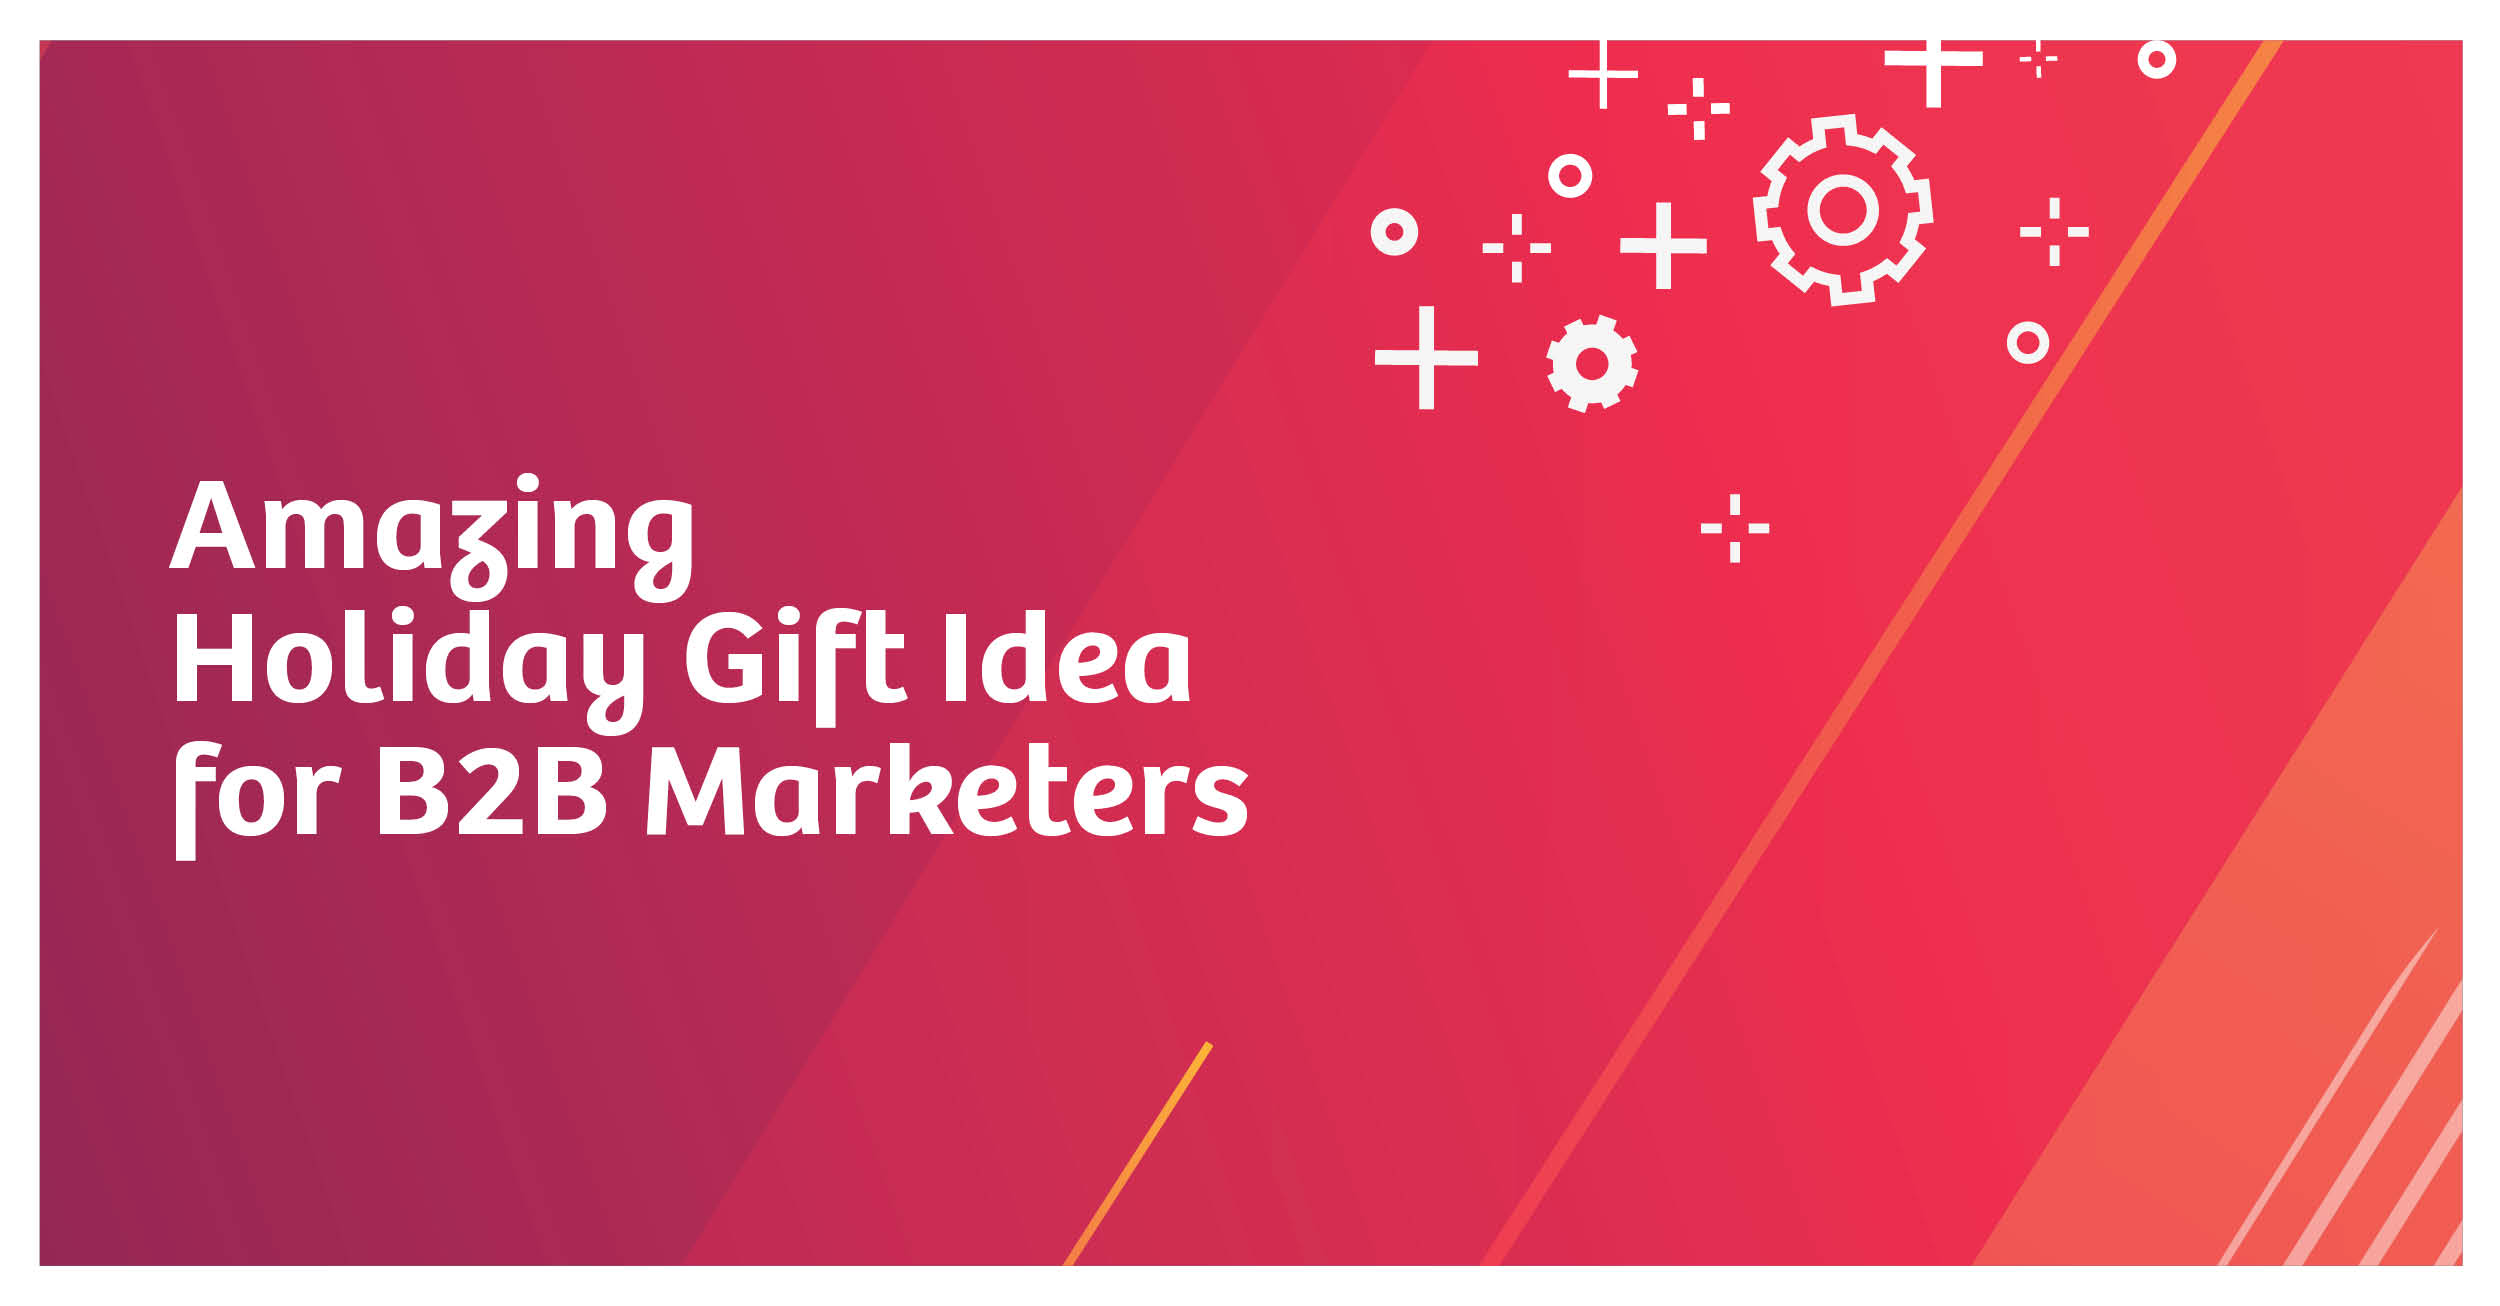 Holiday Gift Idea for B2B Marketers